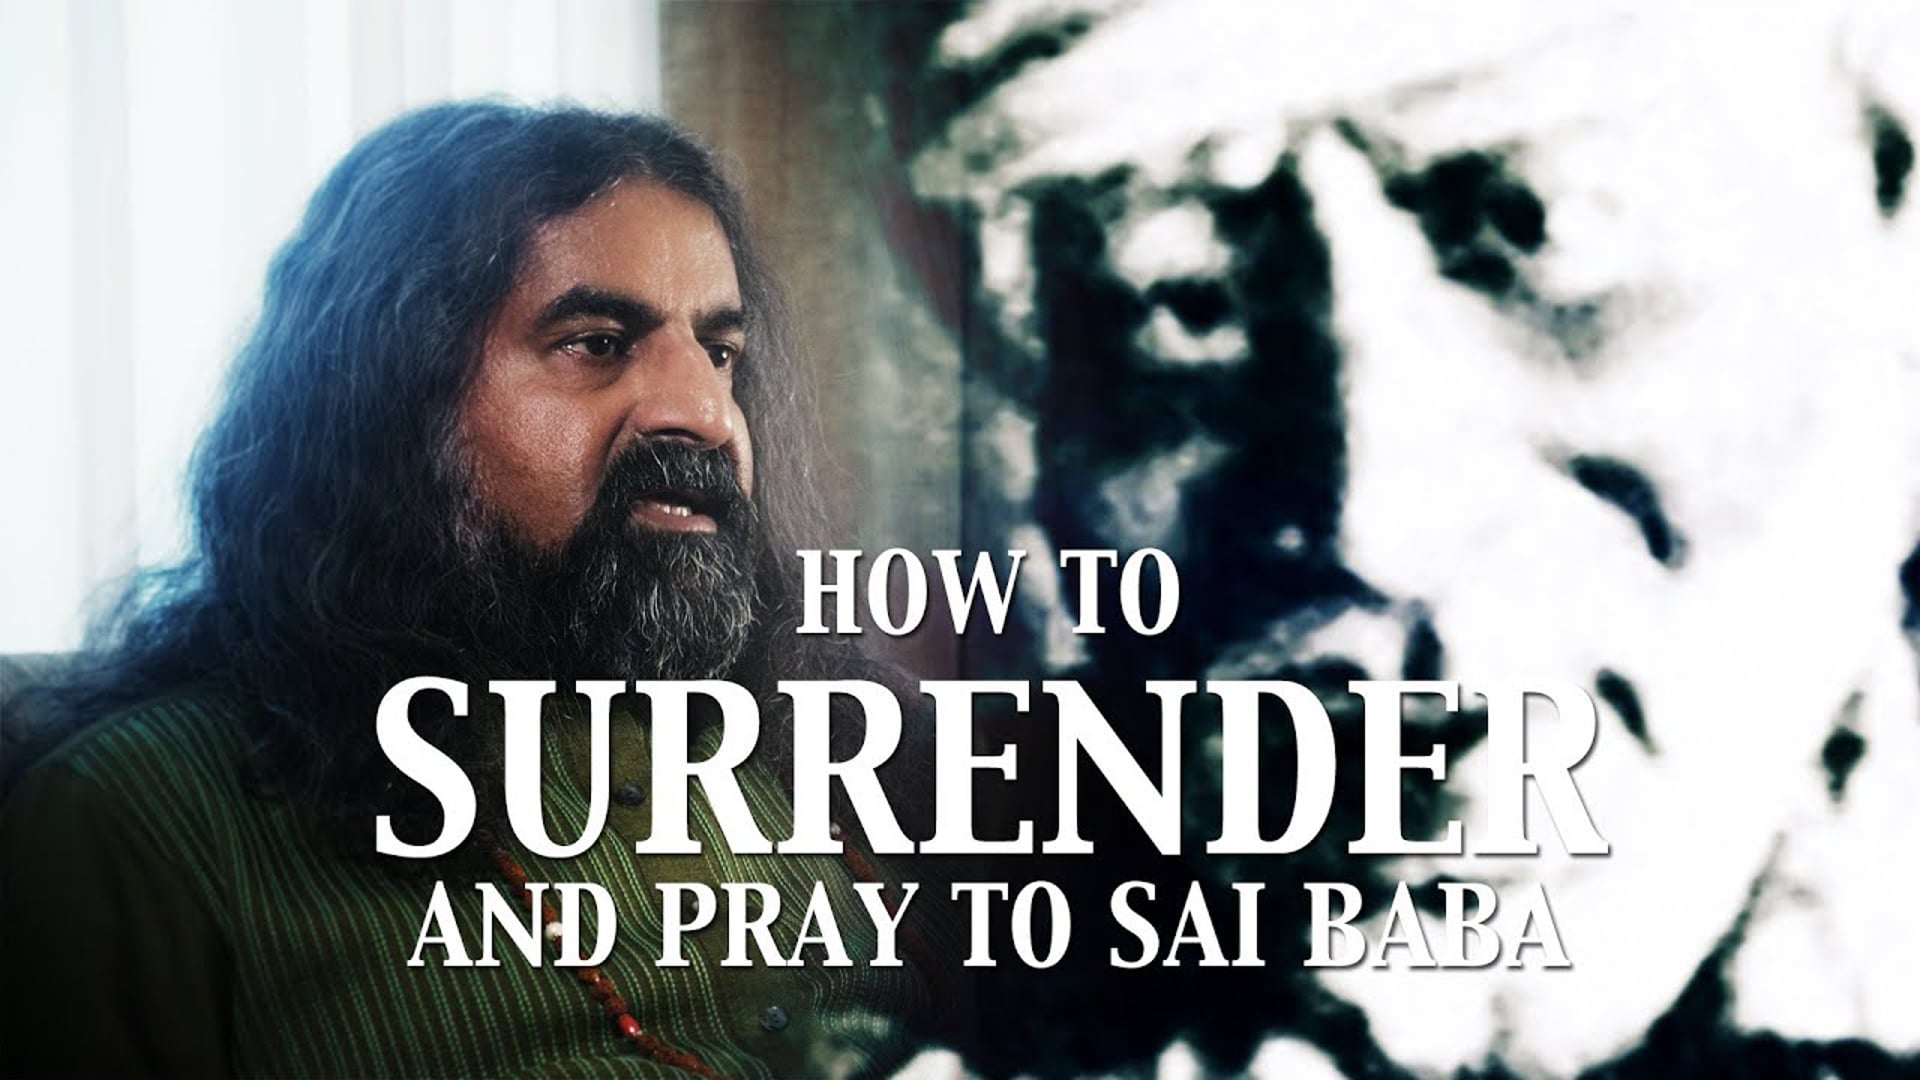 How to Surrender and Pray to Baba